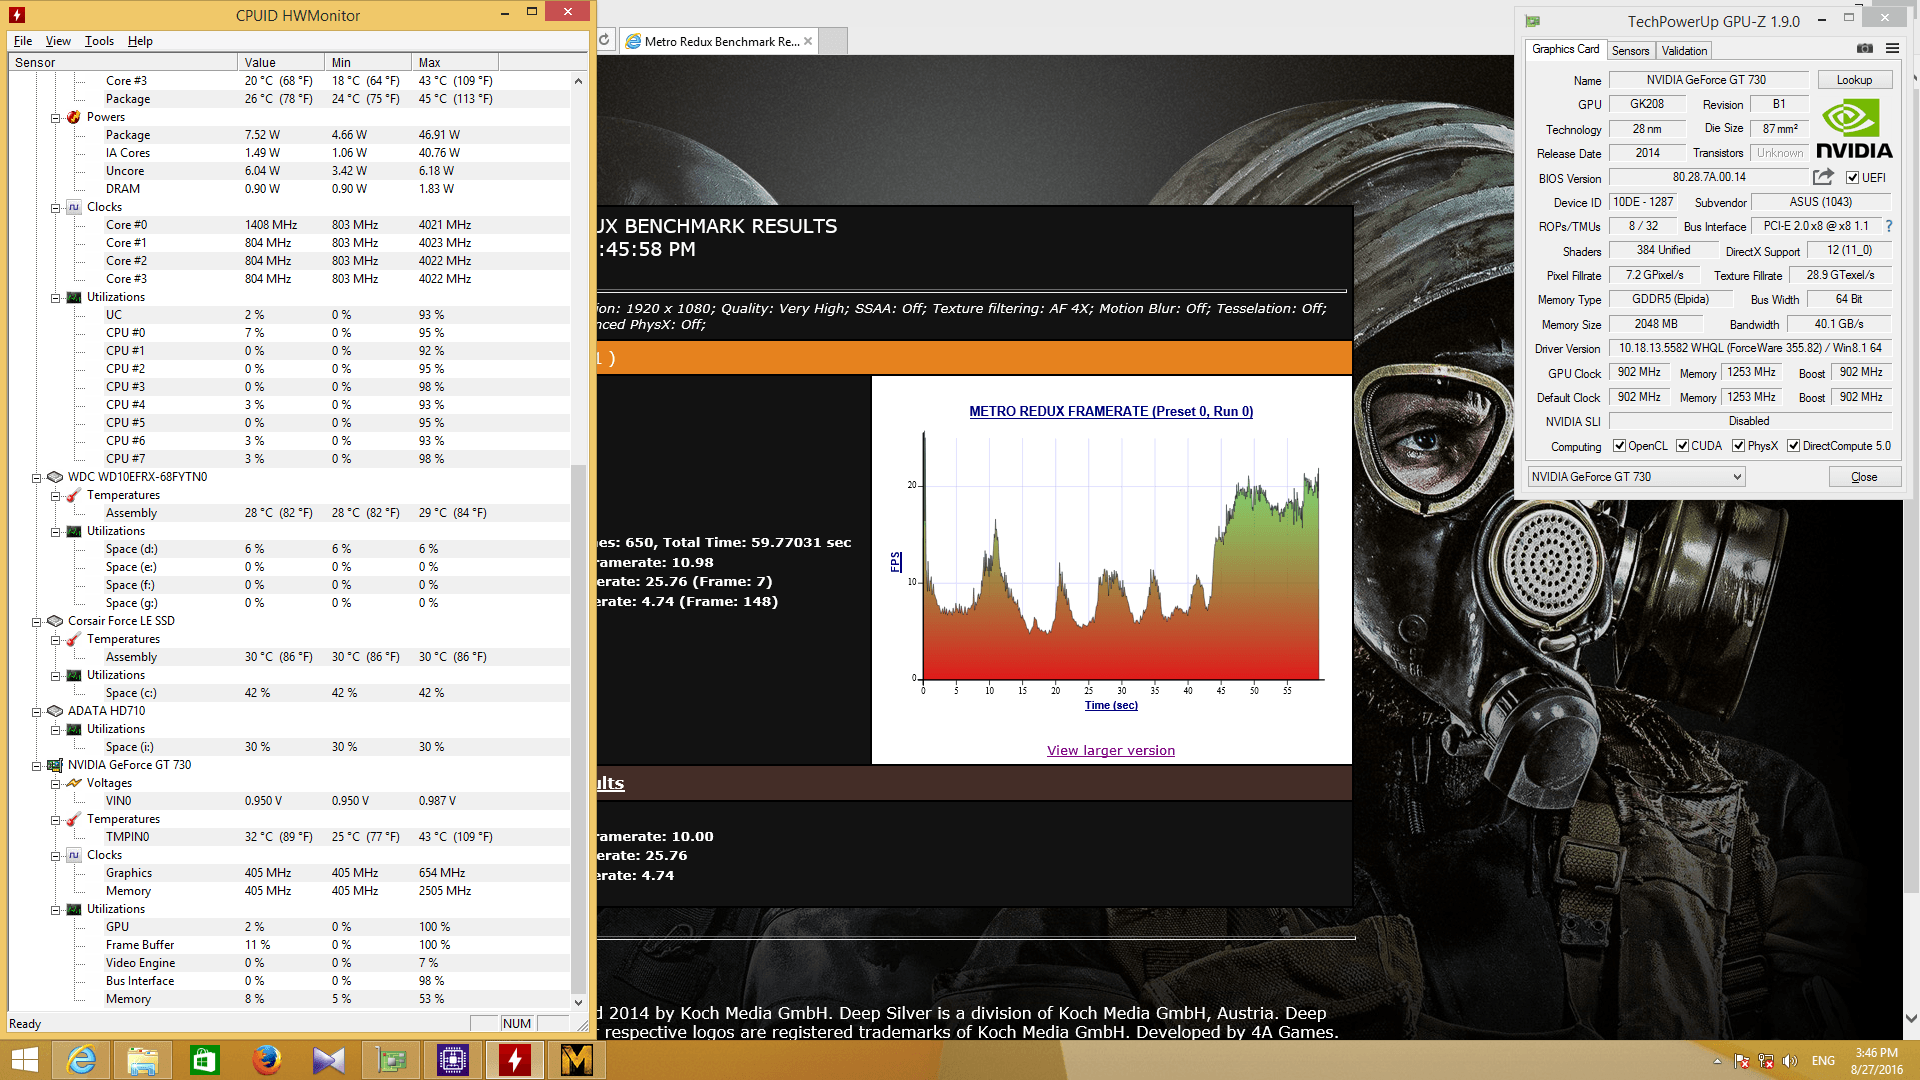 metro 2033 Very High1920x1080 in GT 730 2G GDDR5 64bit